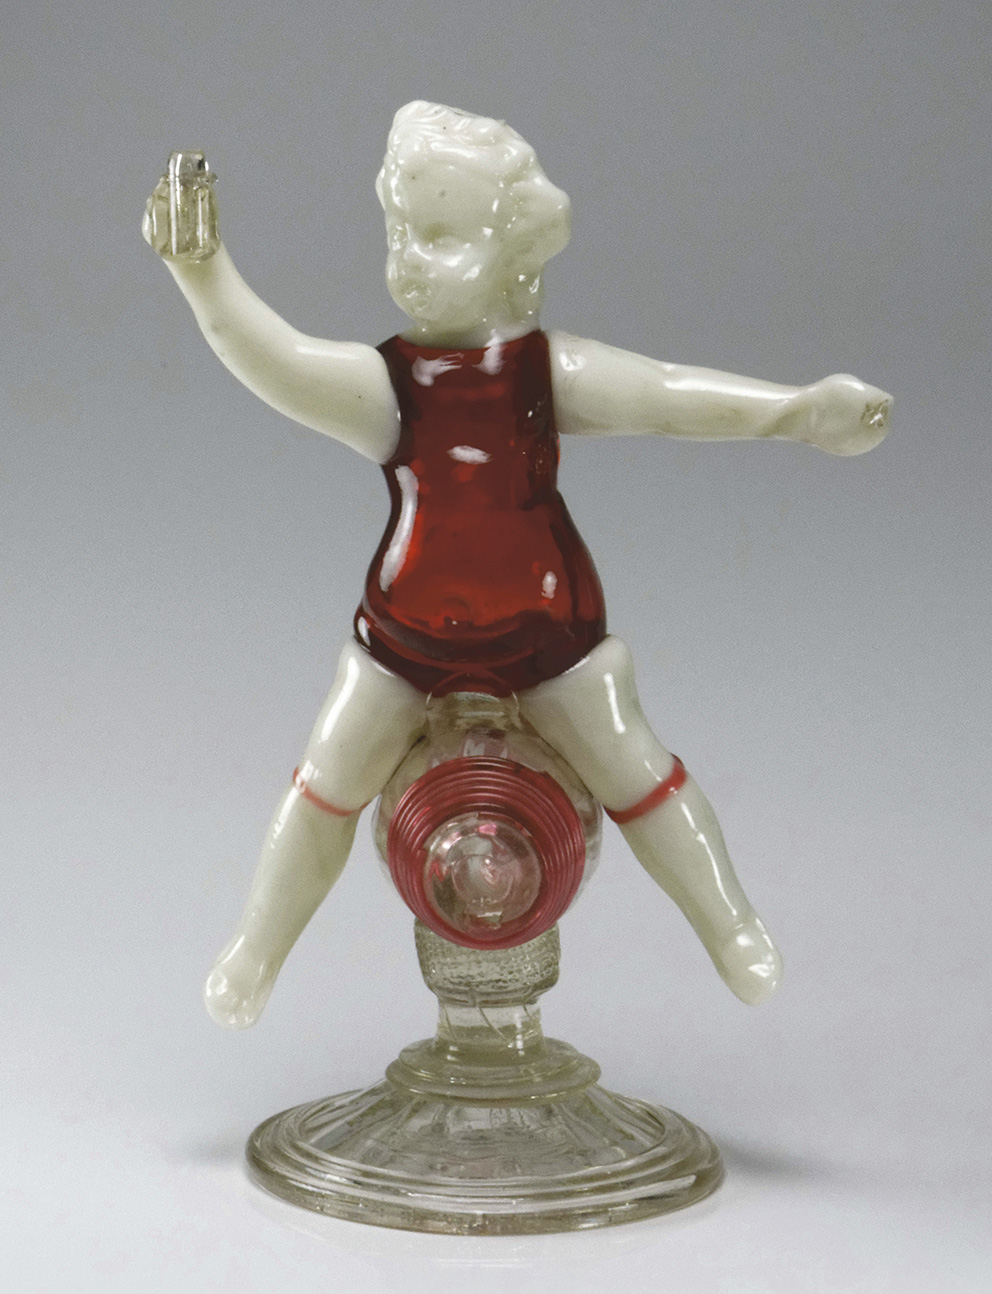 Bernard Perrot (1640-1709), Orléans, second half of the 17th century, vitro-porcelain and translucent red glass Bacchus straddling a colou